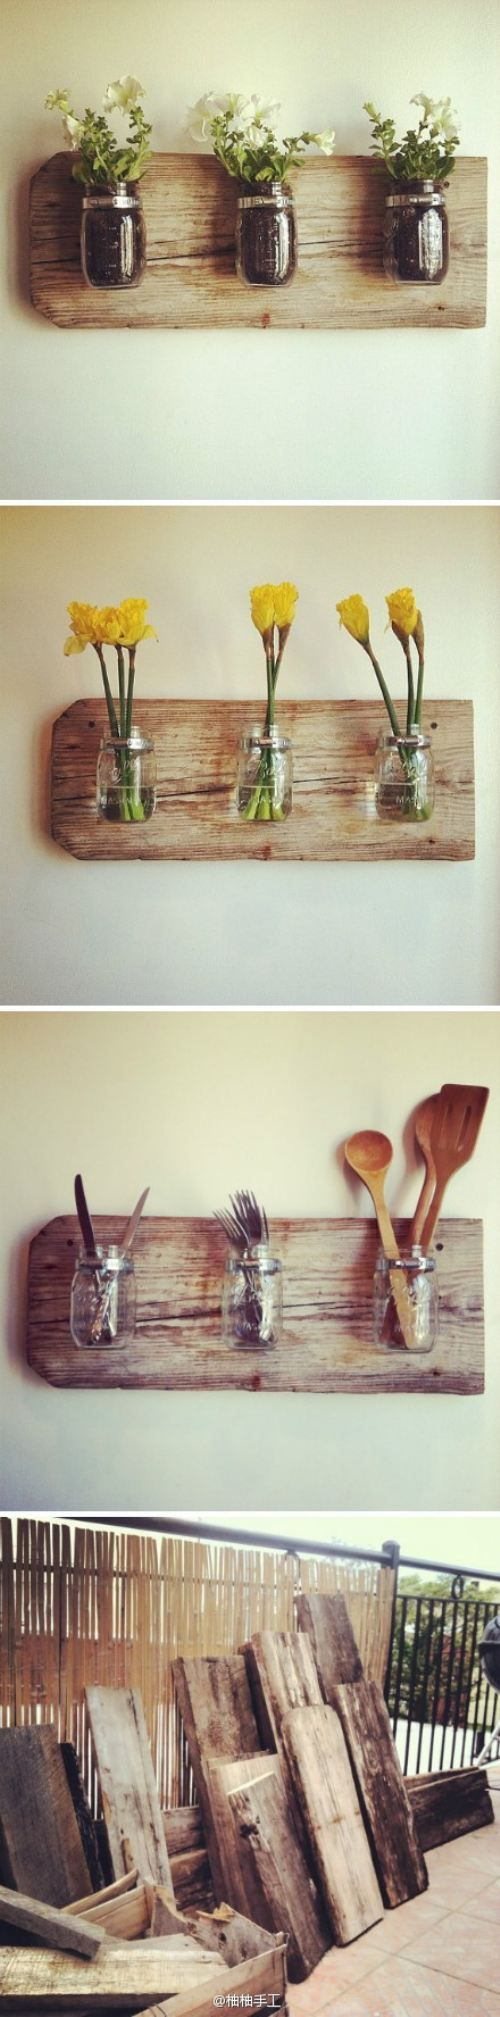 upcycling ideas 4 The UPCYCLING craze - SO CUTE!